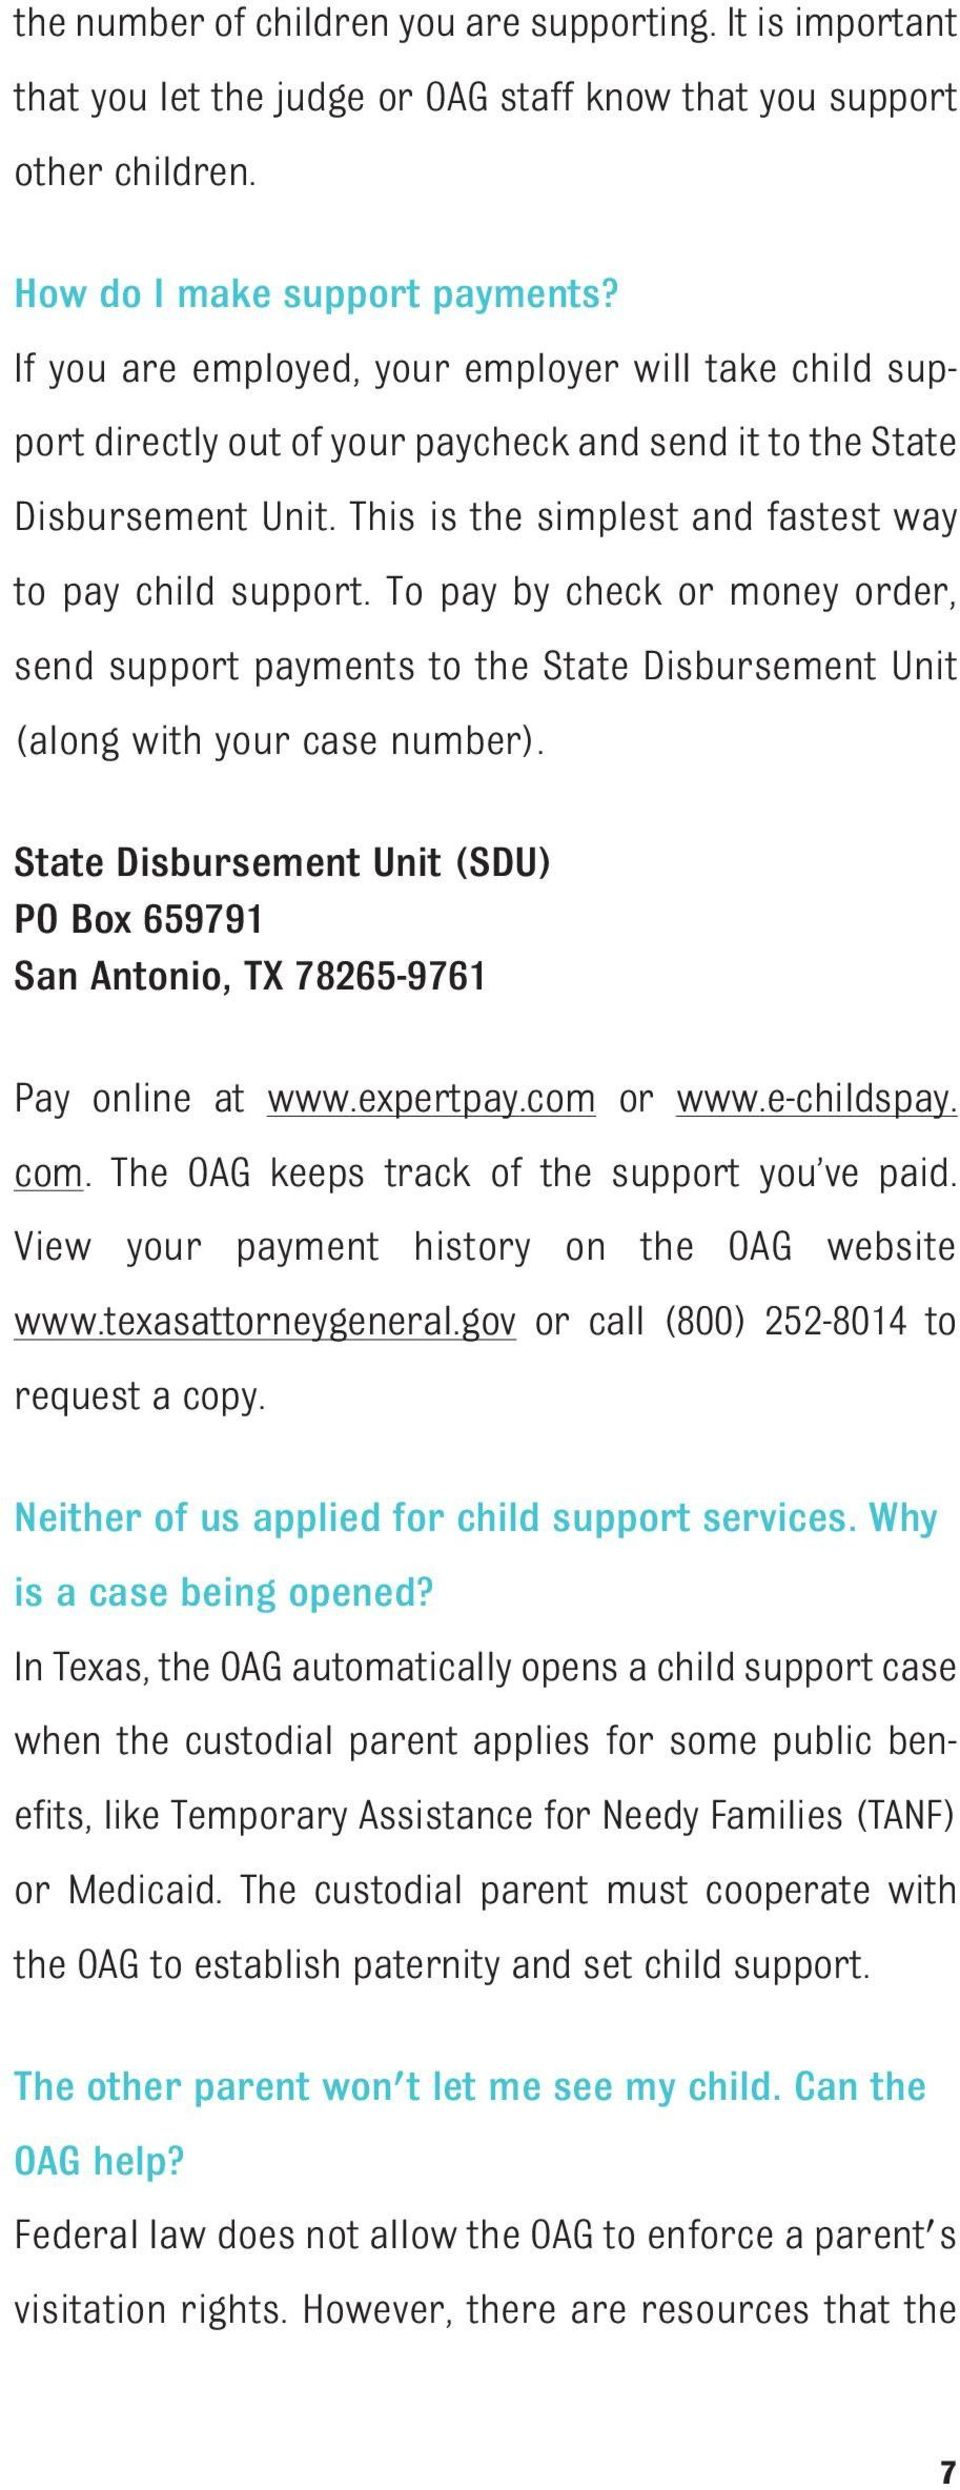 To pay by check or money order, send support payments to the State Disbursement Unit (along with your case number).